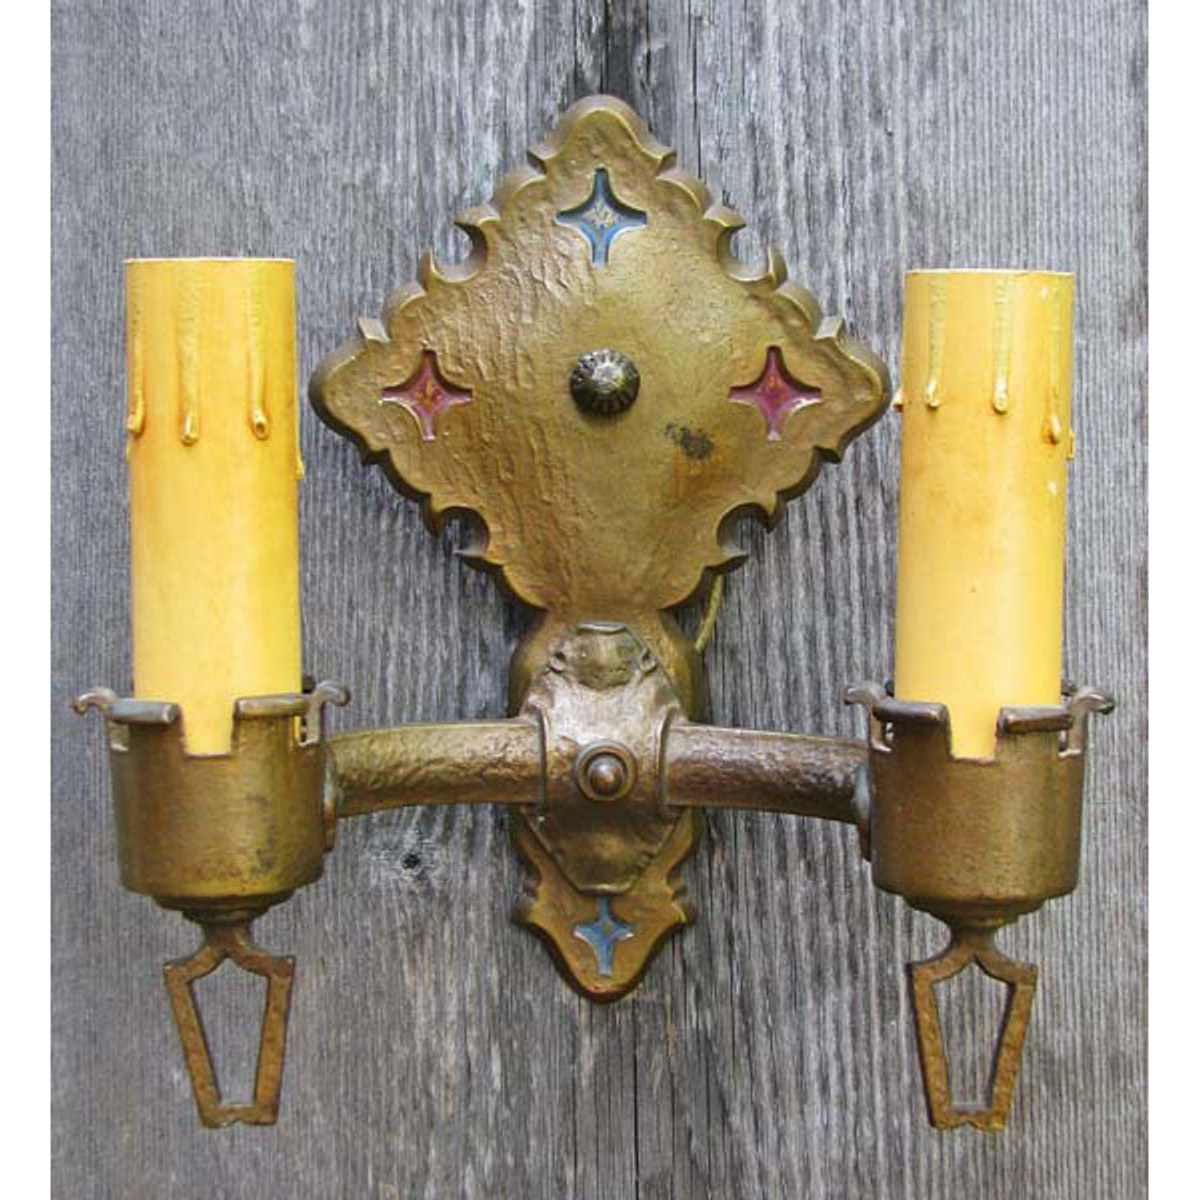 609424 - Antique Tudor Revival Double Candle Arm Wall Sconce